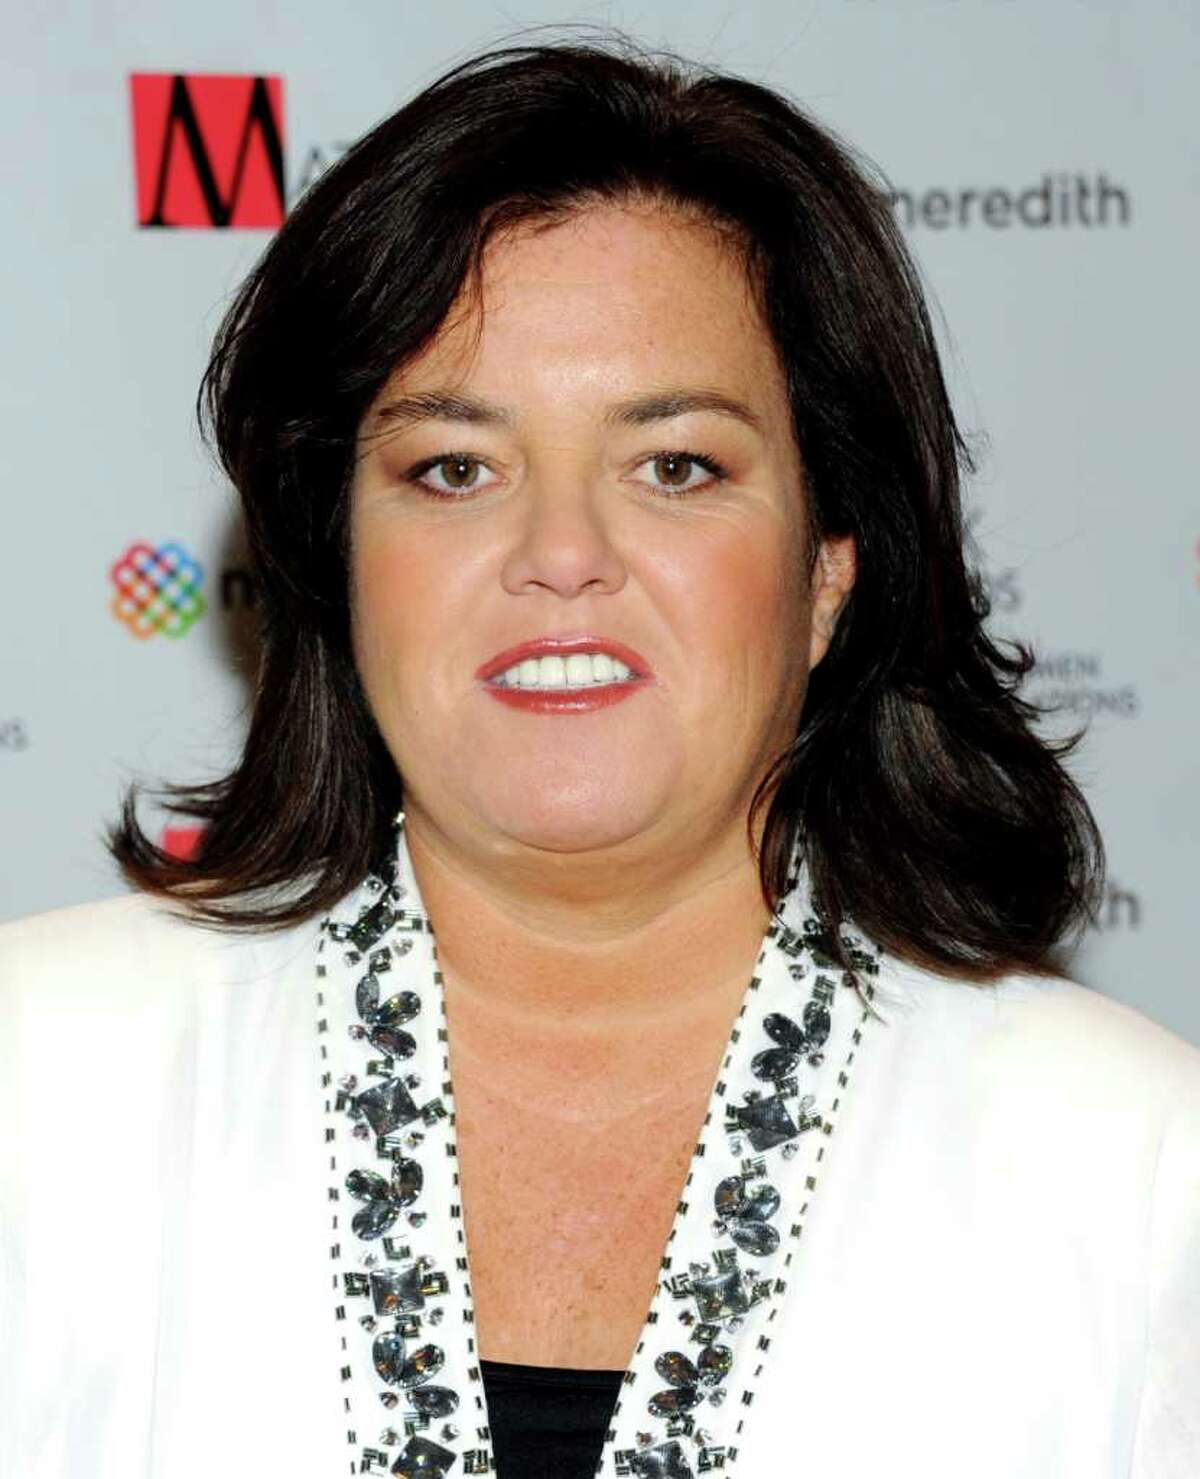 FILE - In this April 11, 2011 file photo, television personality Rosie O'Donnell attends the New York Women in Communications' 2011 Matrix Awards in New York. OA'A?'Donnell and her girlfriend, Michelle Rounds, are engaged. OA'A?'DonnellA'A?'s publicist and a spokesman for the Oprah Winfrey Network say the host of A'A?